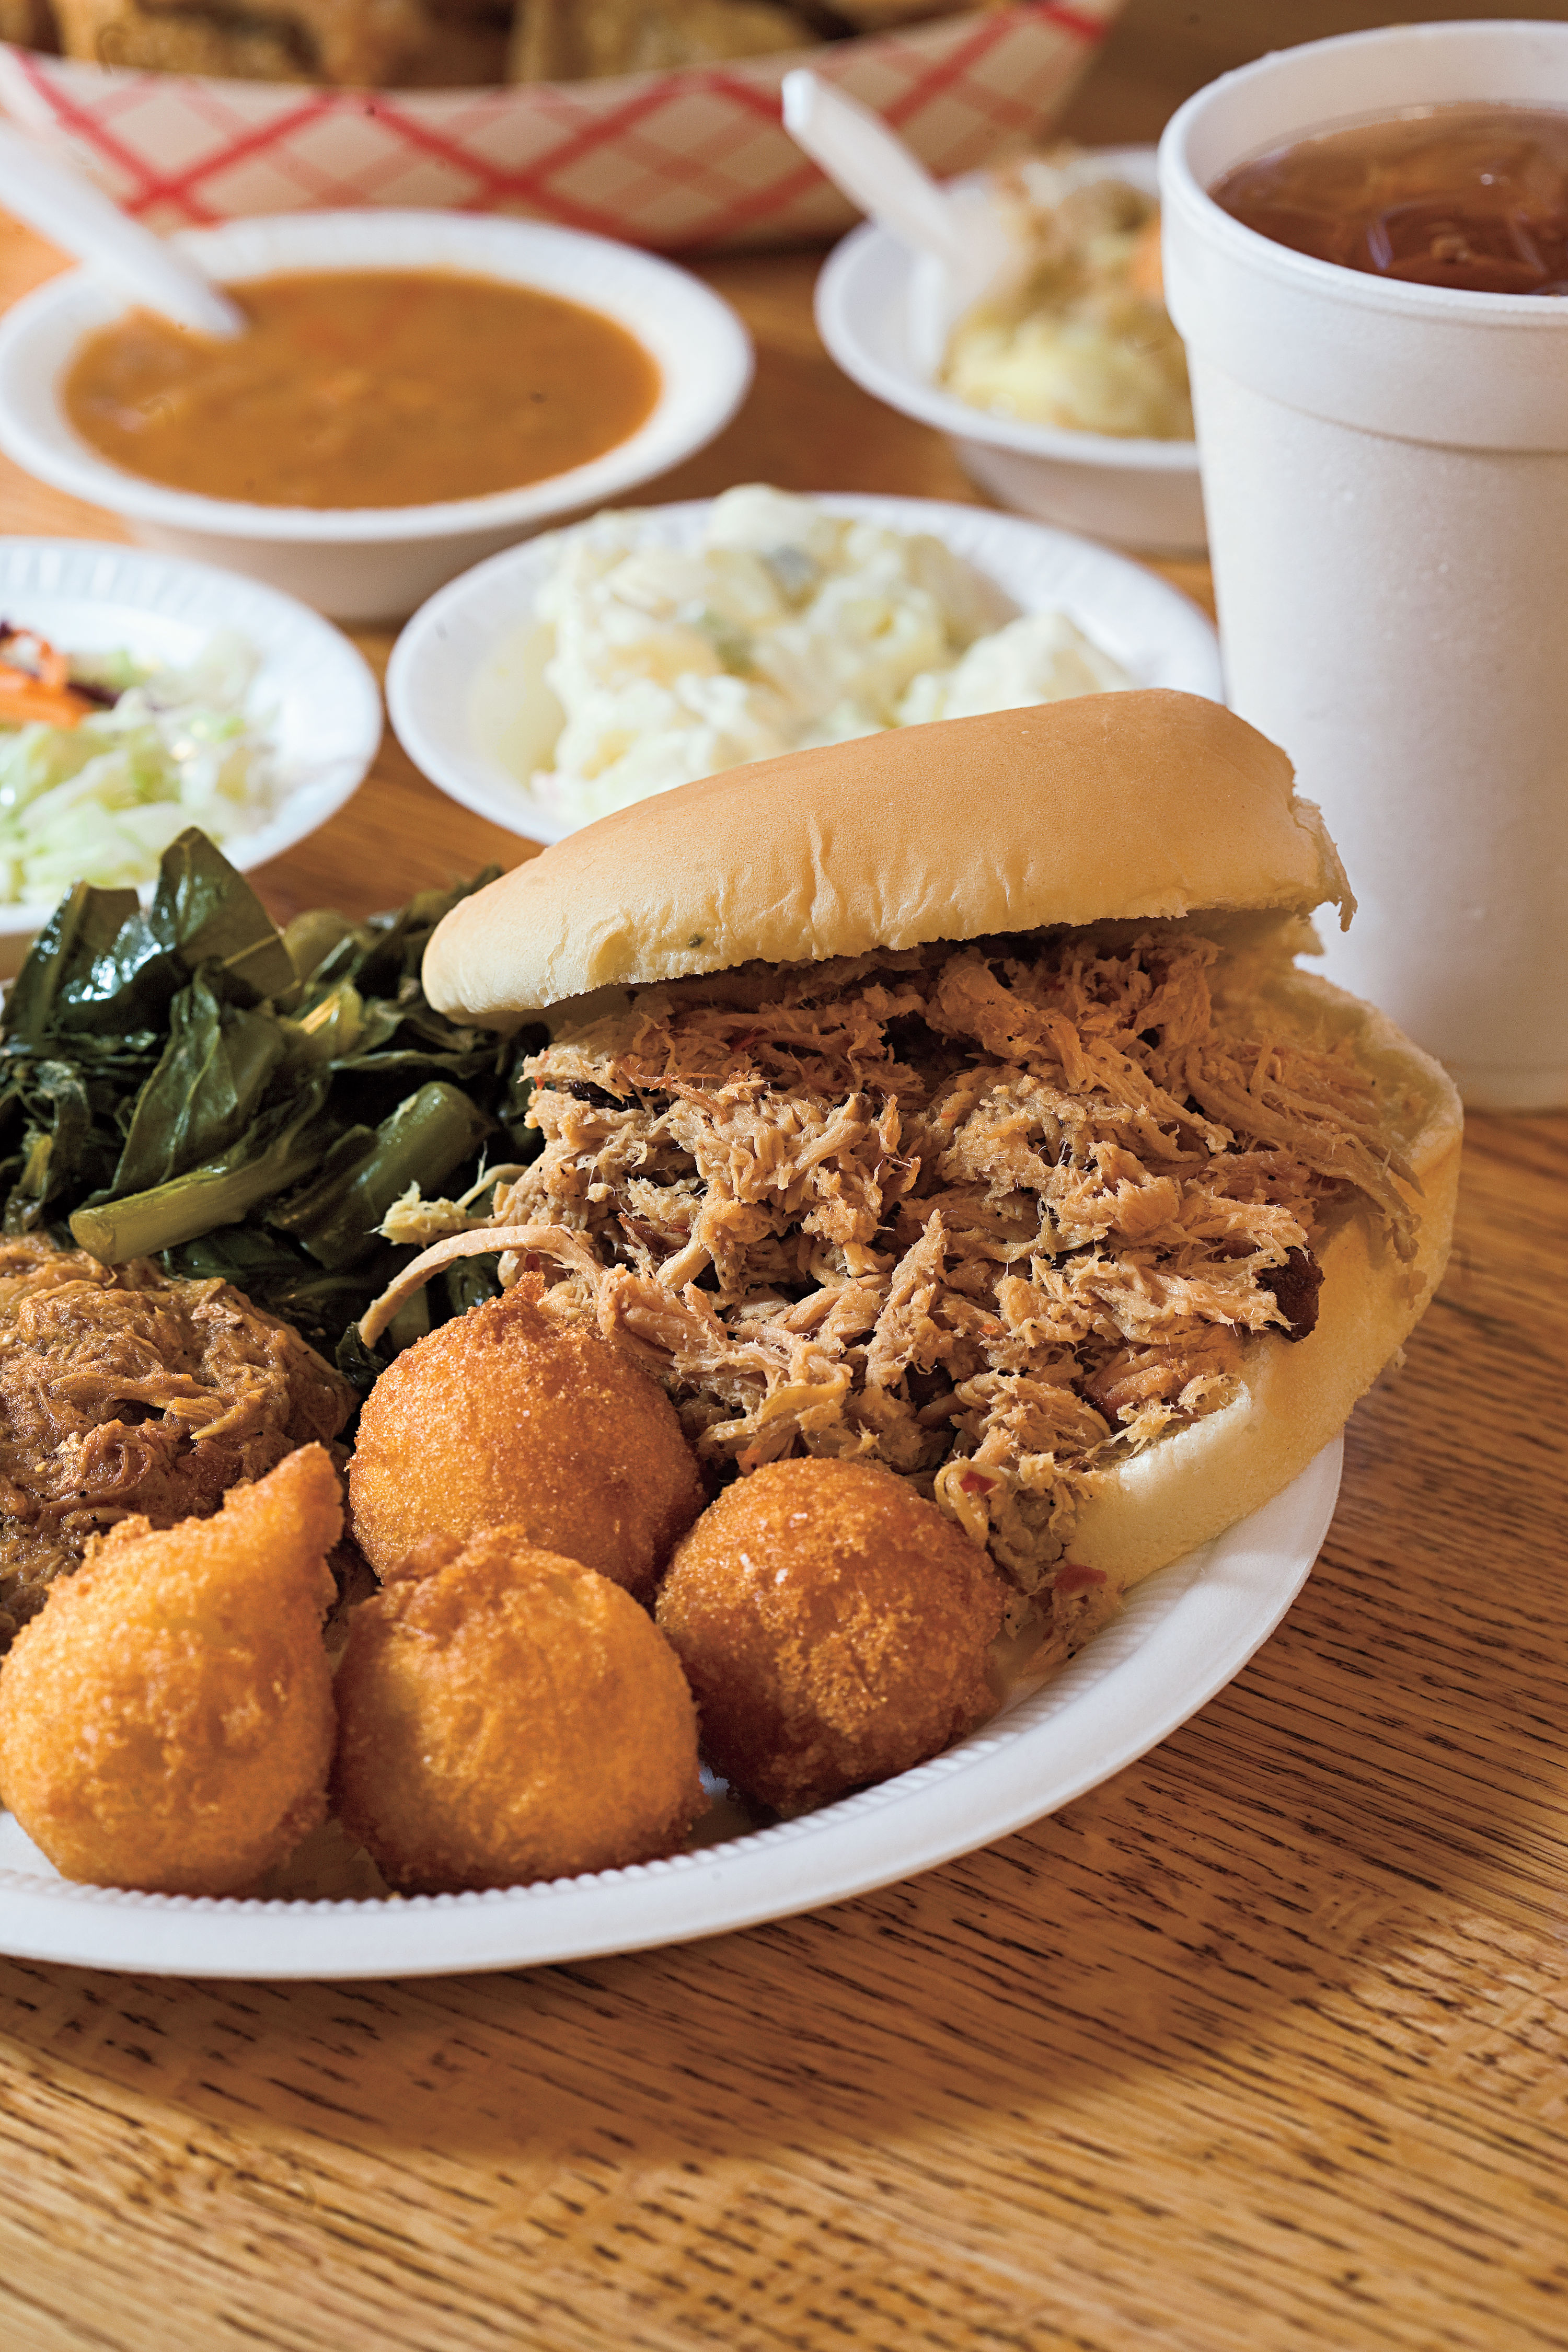 Best Carolina Barbecue: Little Pigs Barbecue